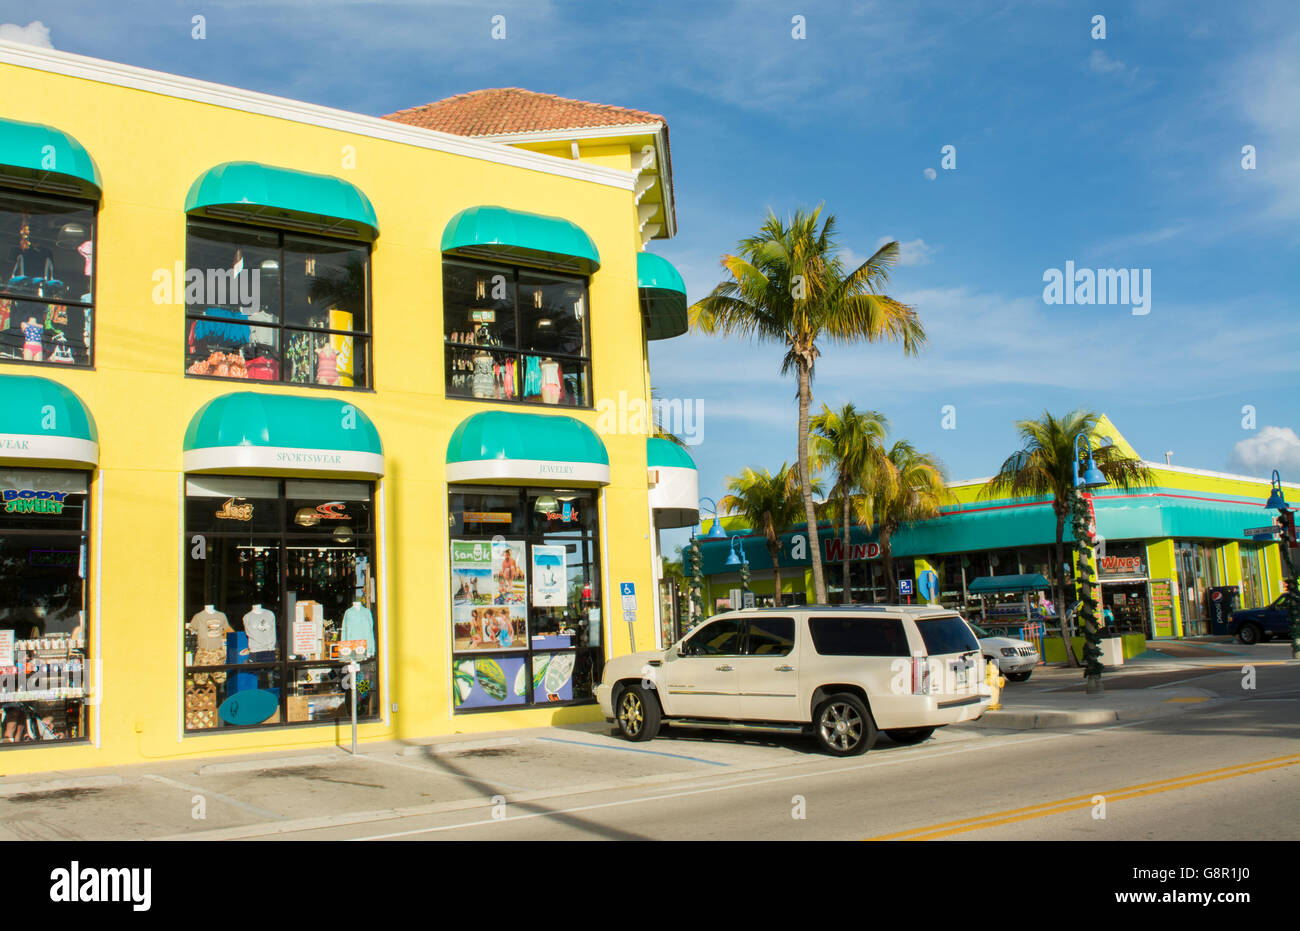 Ft Myers Beach Florida beach at famous pier with shops and colorful stores for Holiday tourists vacation - Stock Image